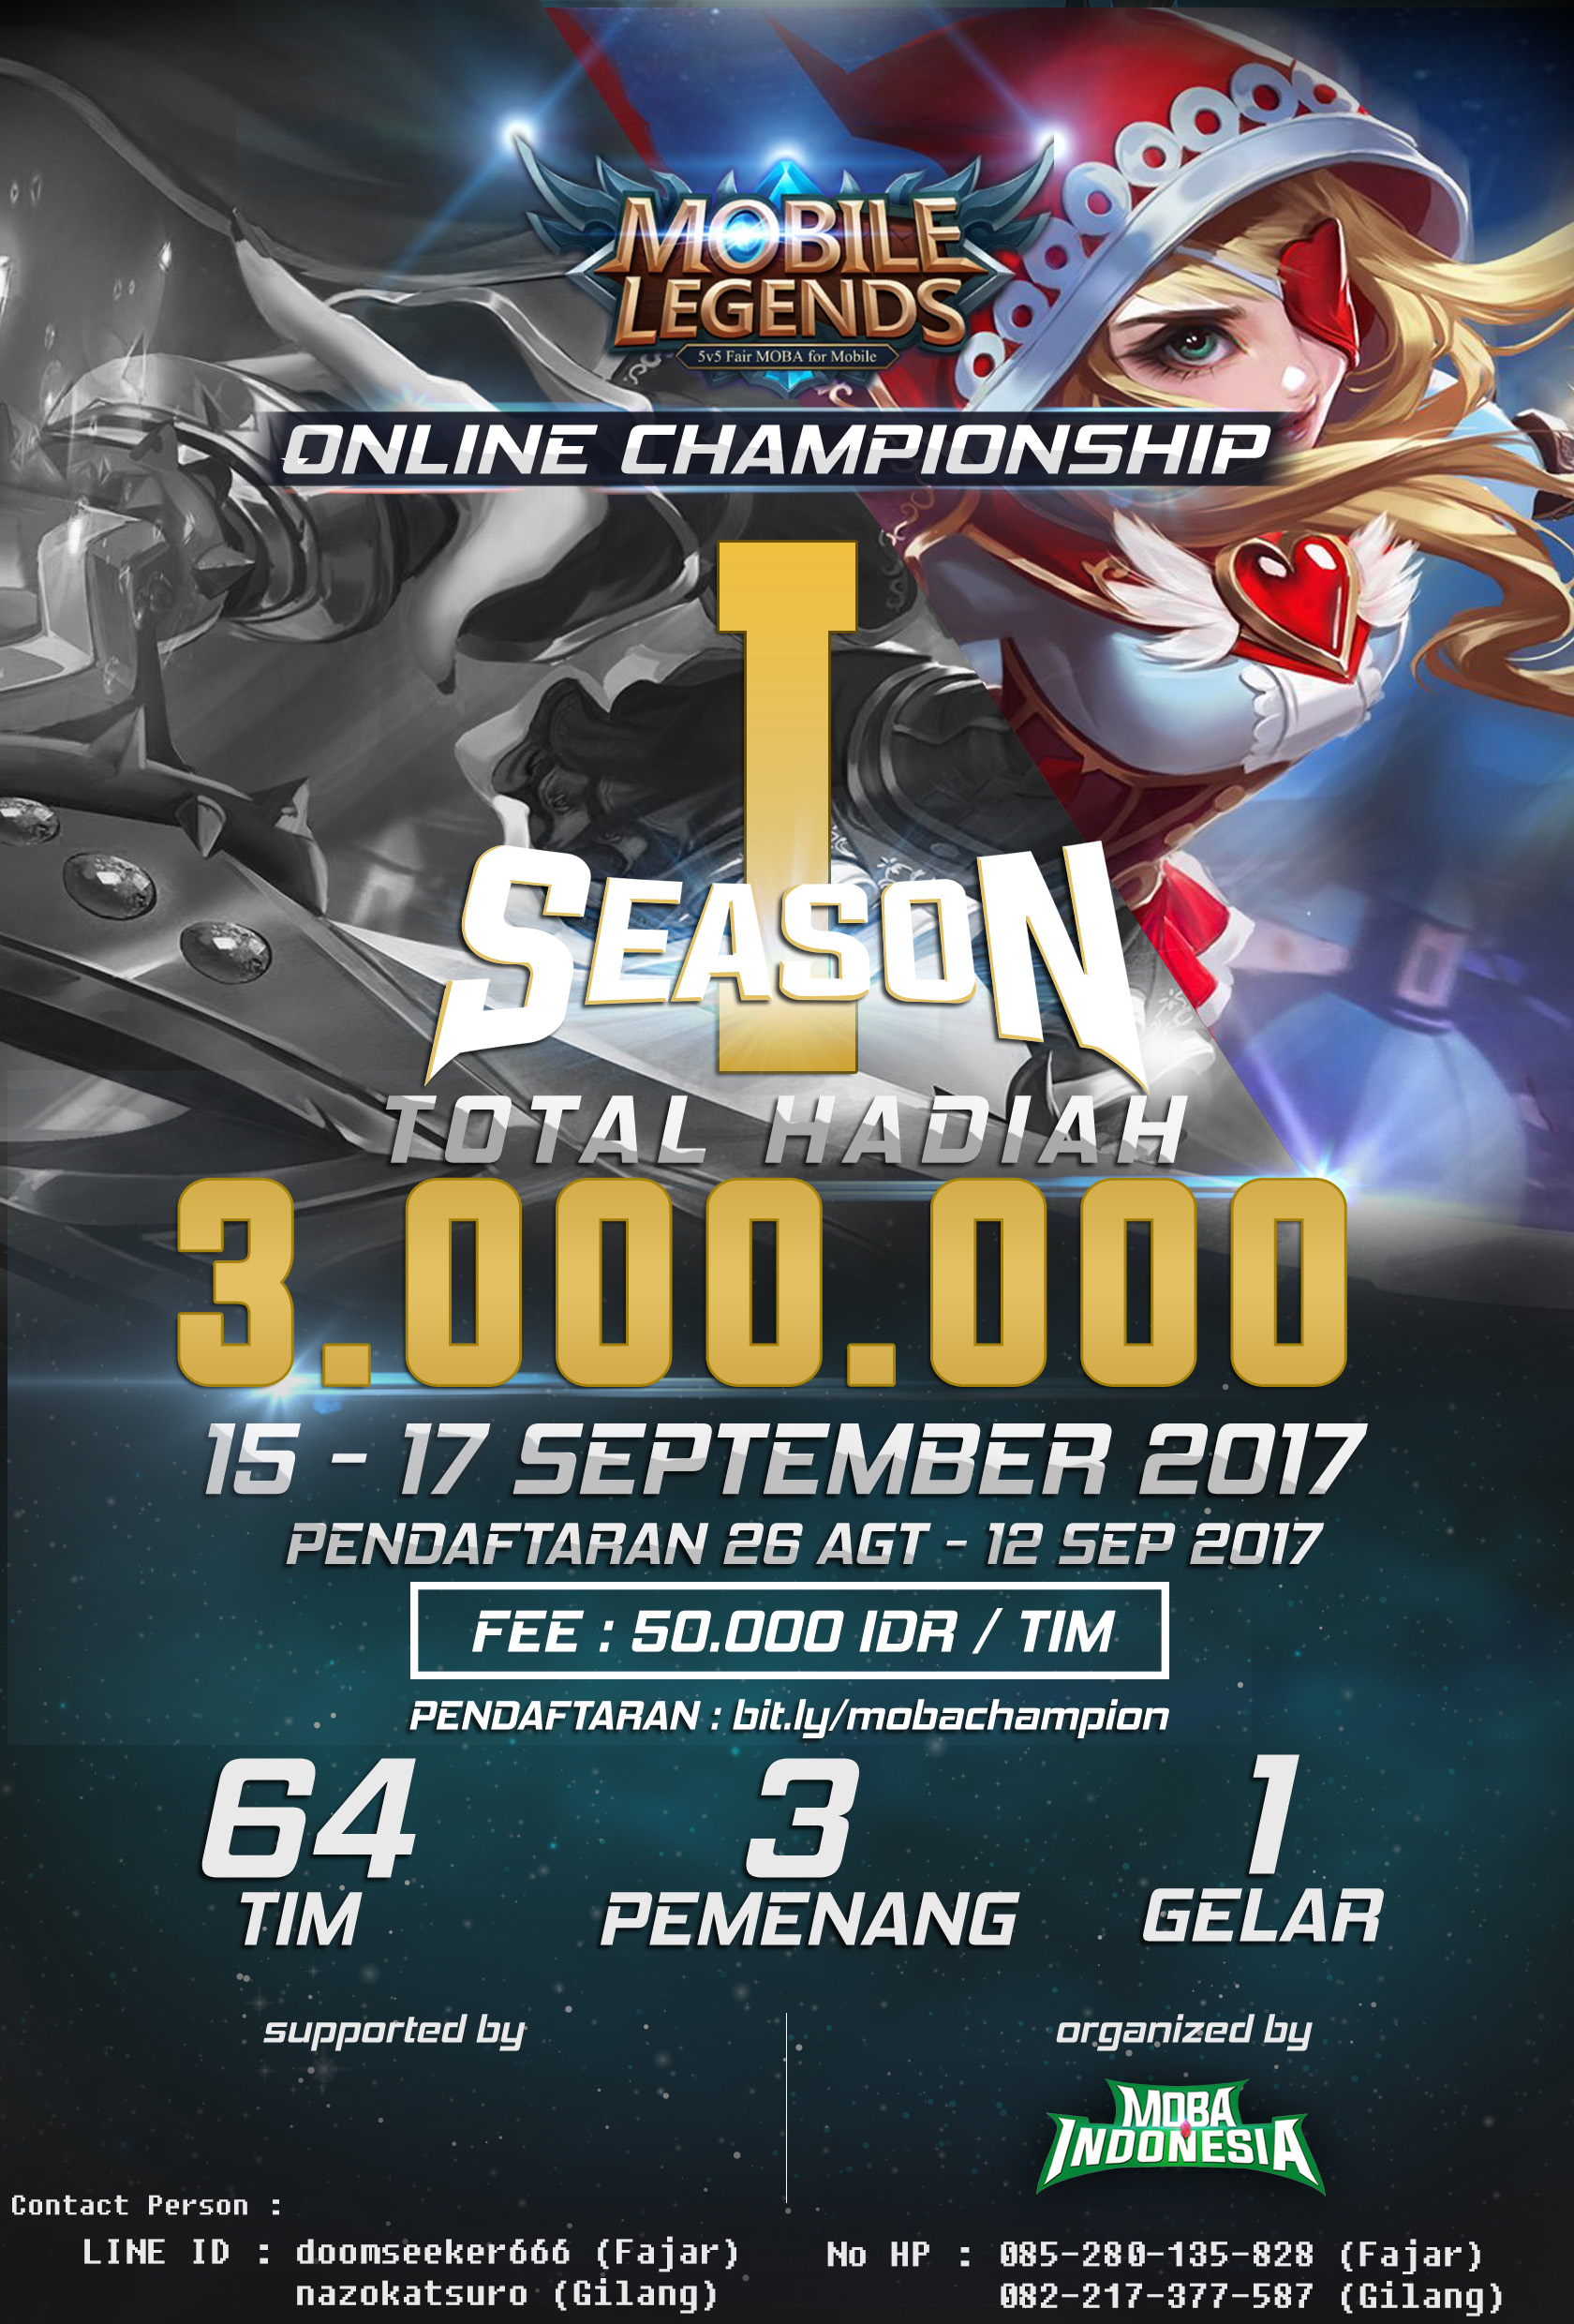 MOBILE LEGENDS ONLINE CHAMPIONSHIP INDONESIA SEASON 1